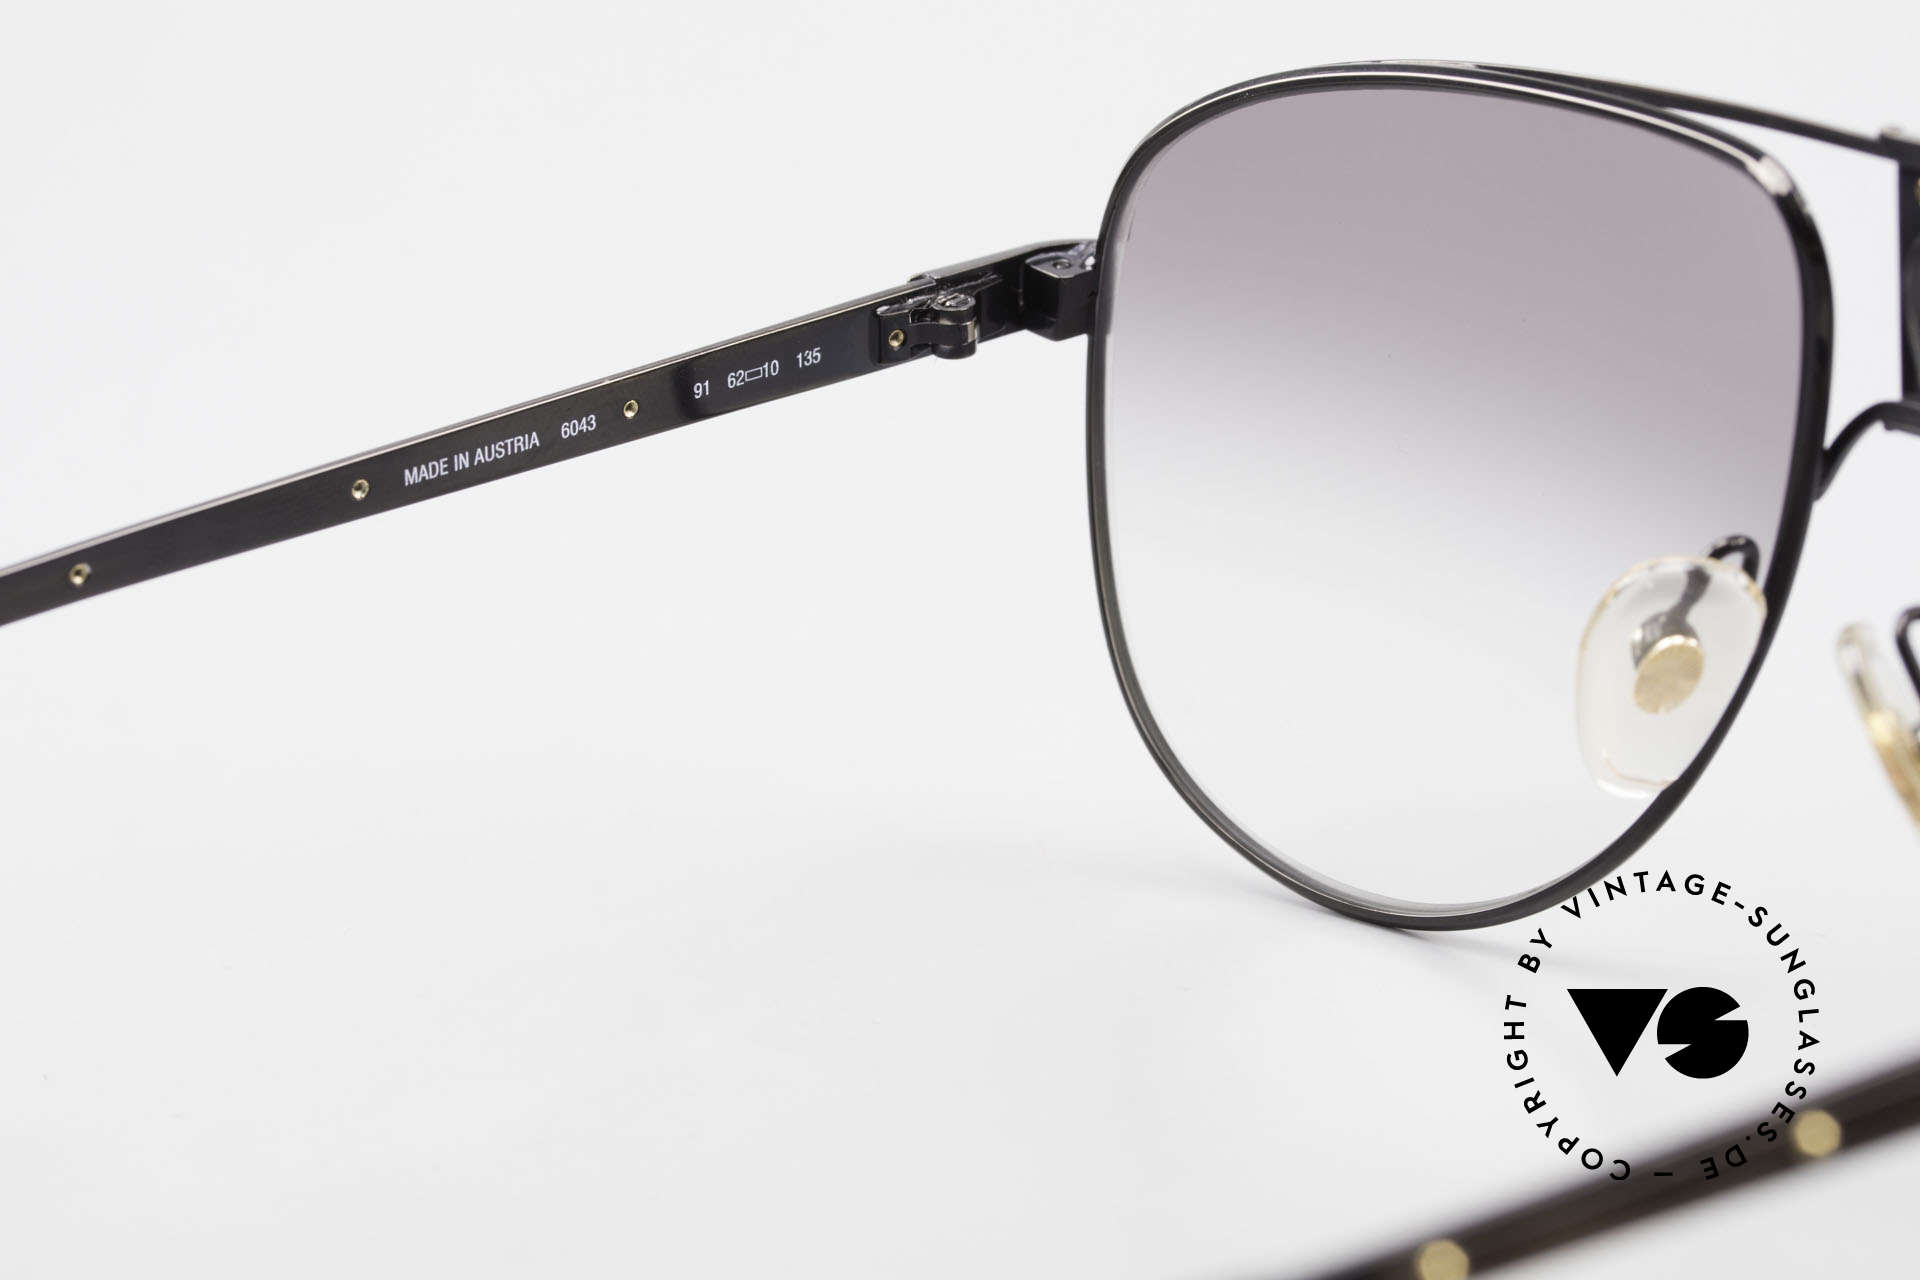 Dunhill 6043 Men's Shades With Horn Trims, new old stock (like all our Alfred Dunhill shades), Made for Men